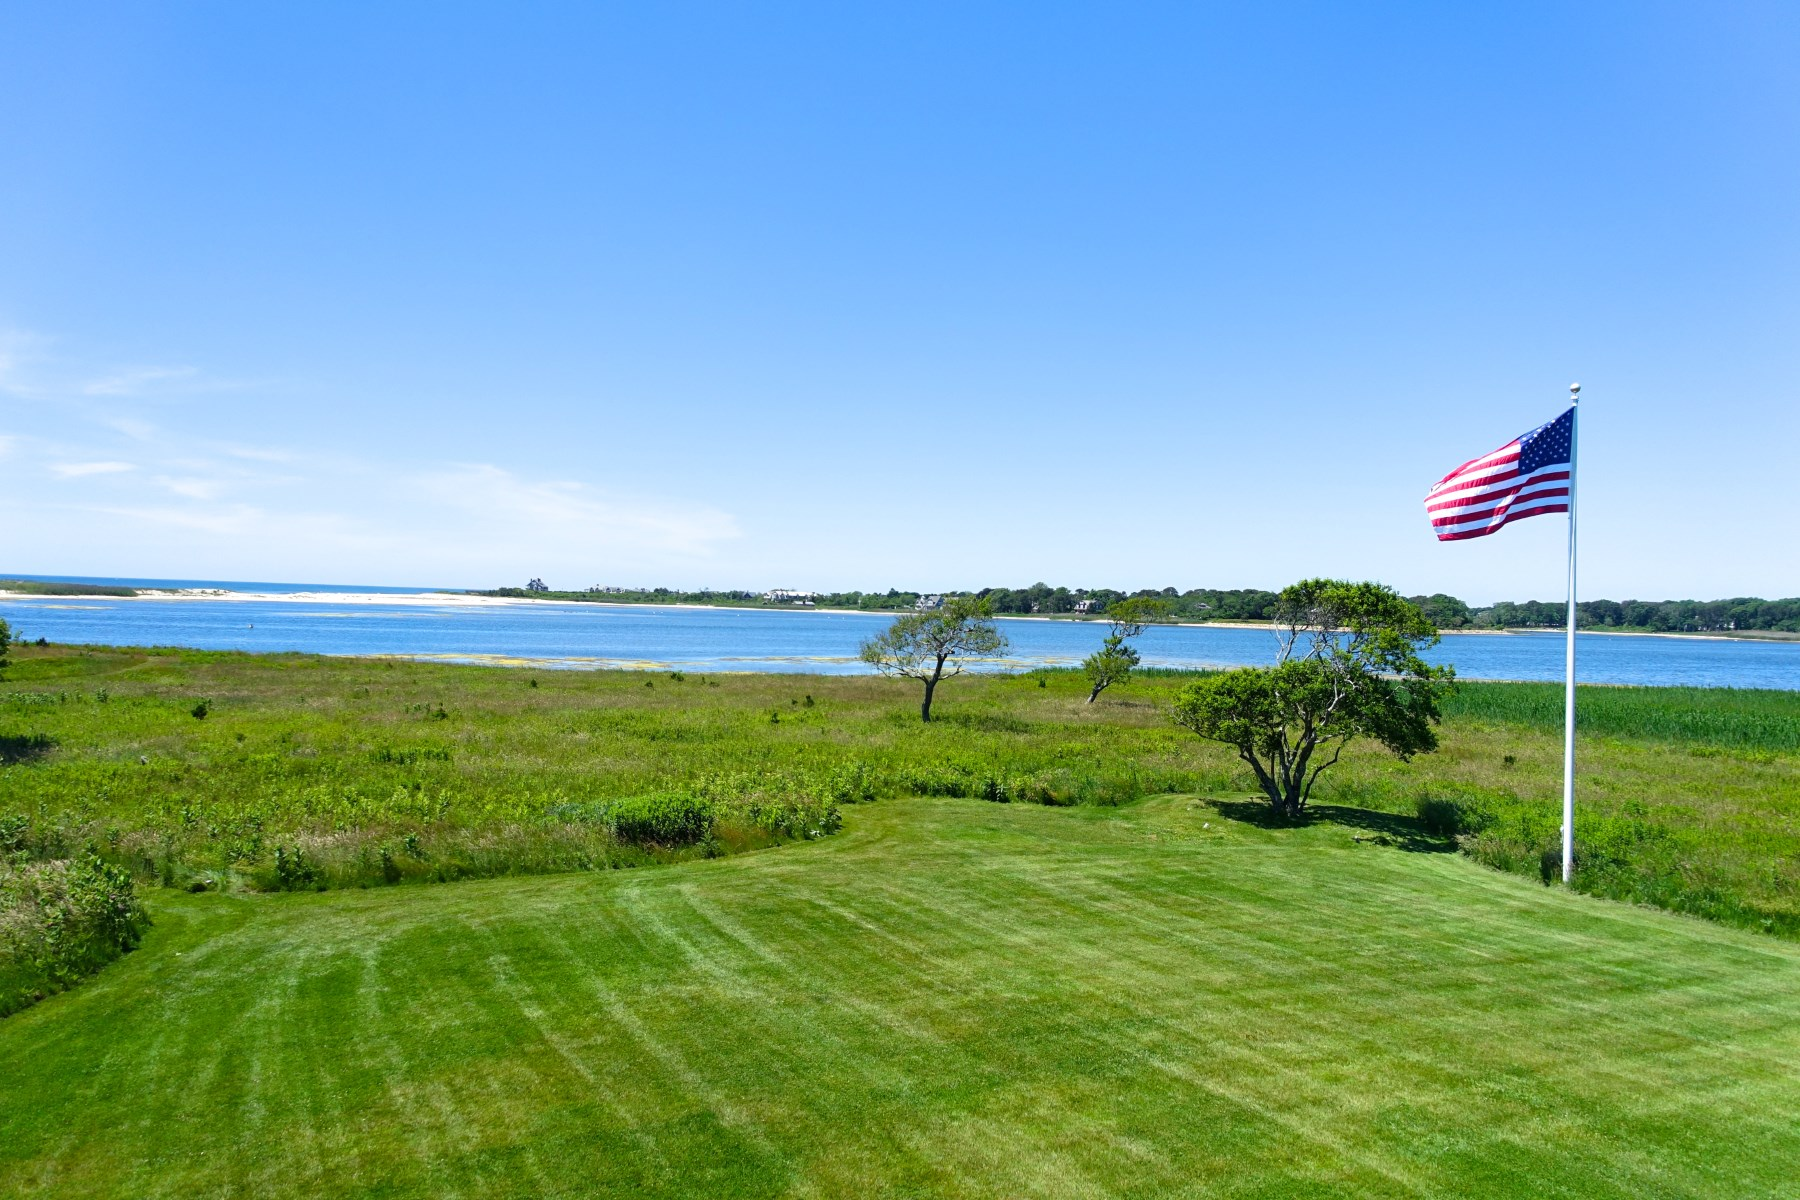 Moradia para Venda às 7.1 Acres On Prestigious Pond 19 & 23 Chauncey Close East Hampton Village, East Hampton, Nova York, 11937 Estados Unidos